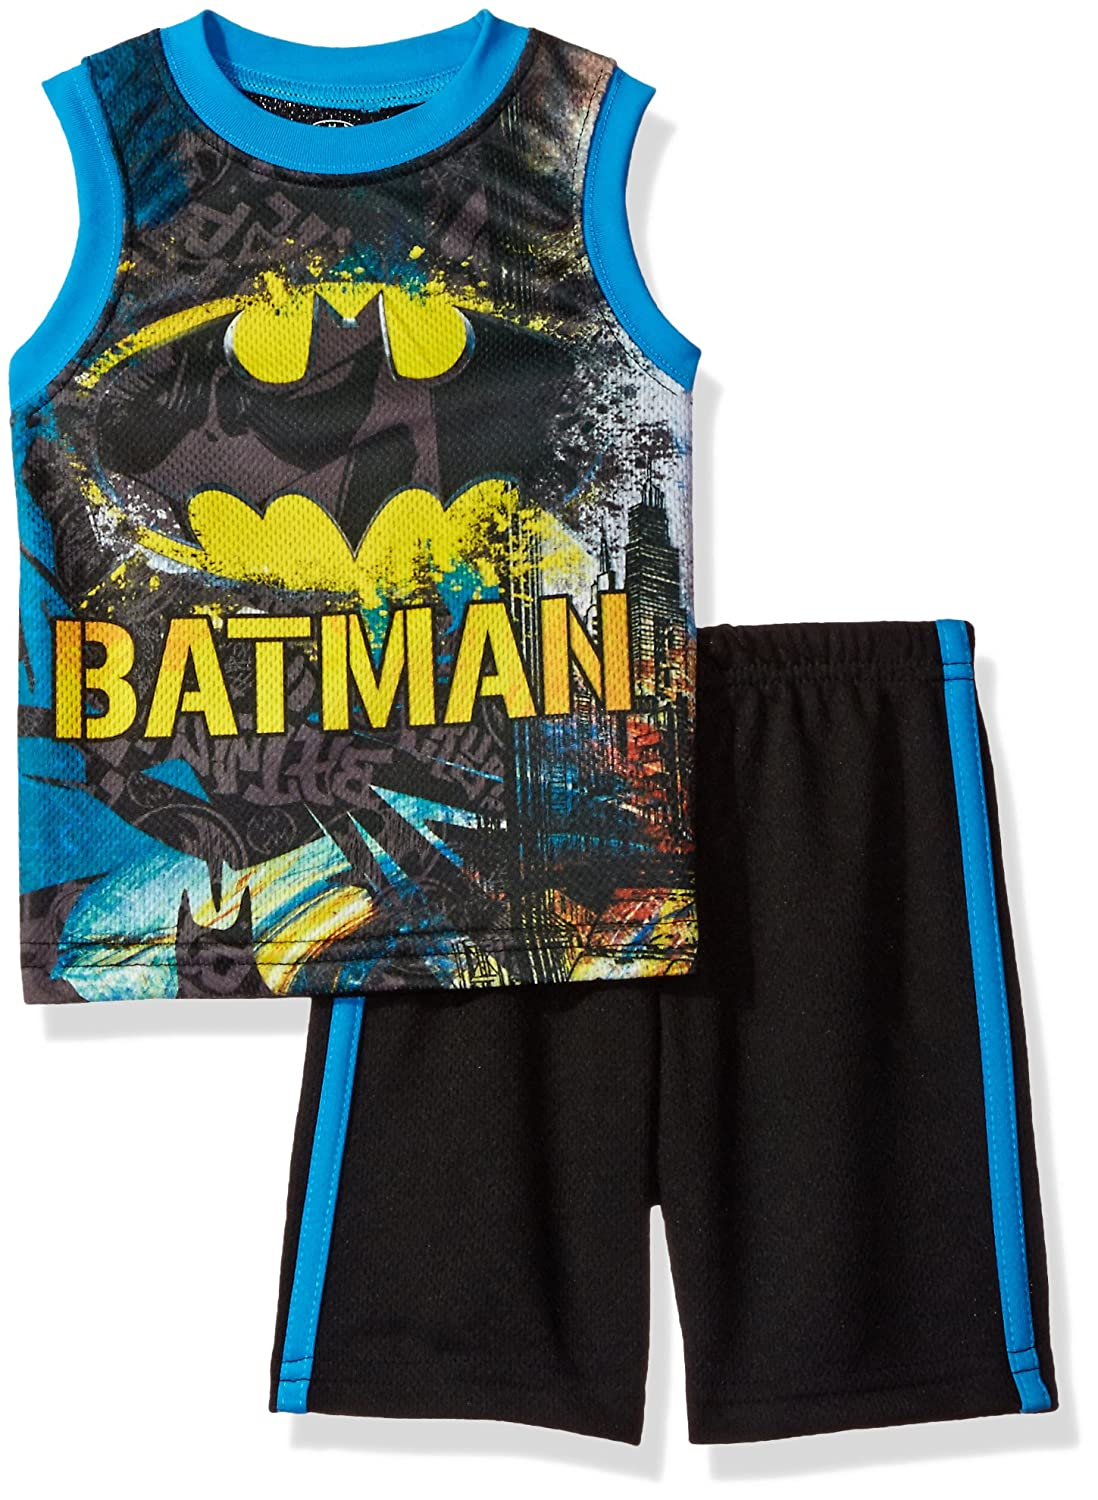 Warner Brothers Boys' Toddler Batman Tank and Short Set Black 3T Bentex Children's Apparel 27E1457BTX